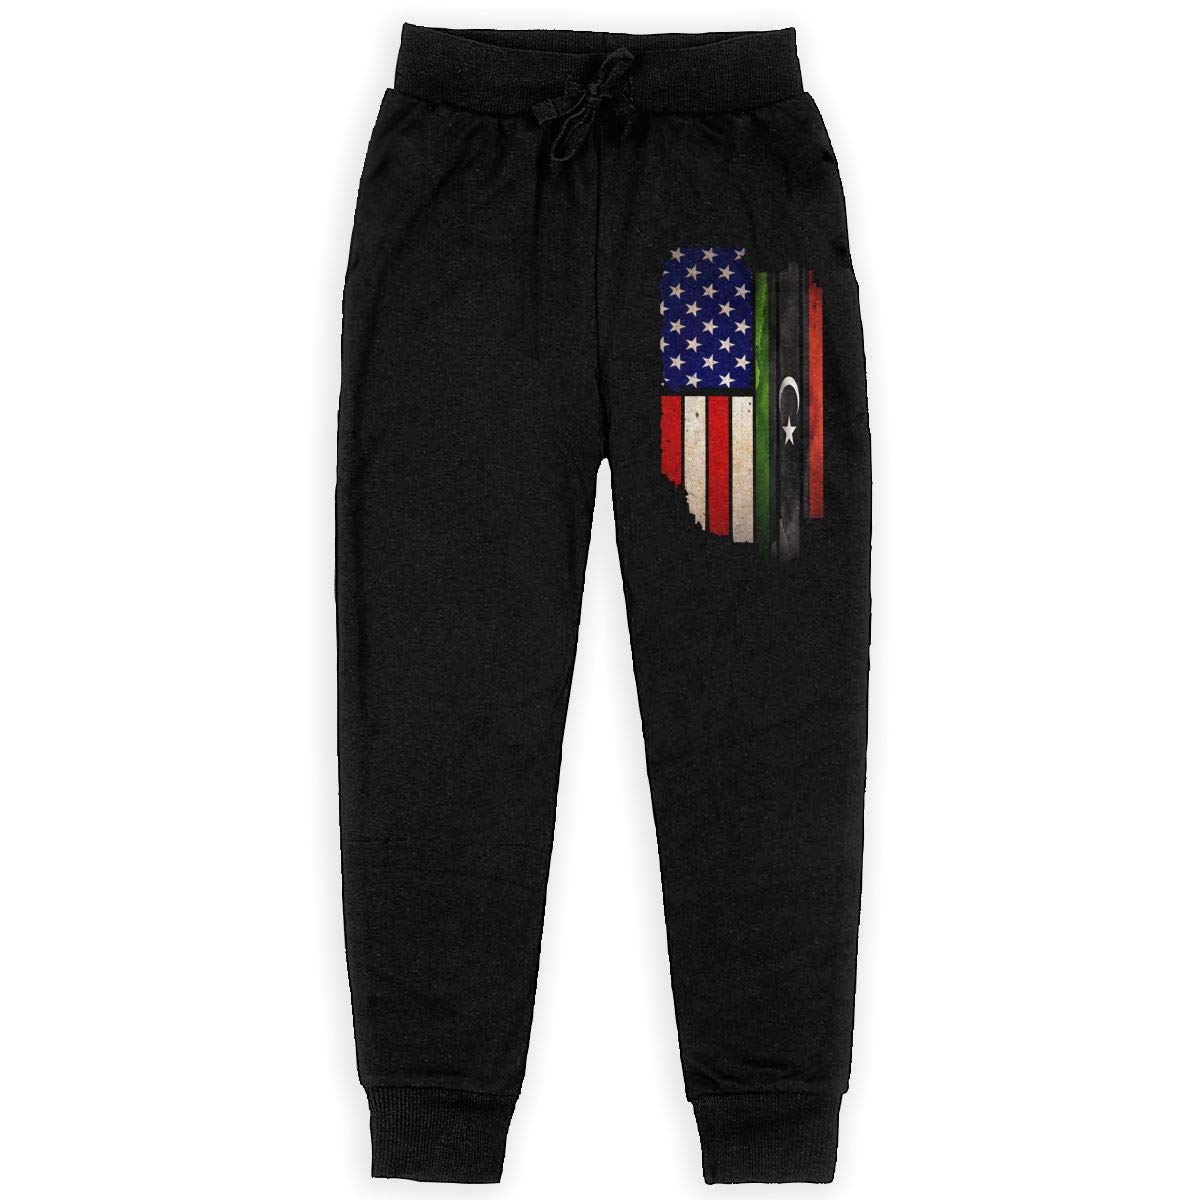 Vintage USA Libya Flag Soft//Cozy Sweatpants Boys Sweat Pant for Teen Girls